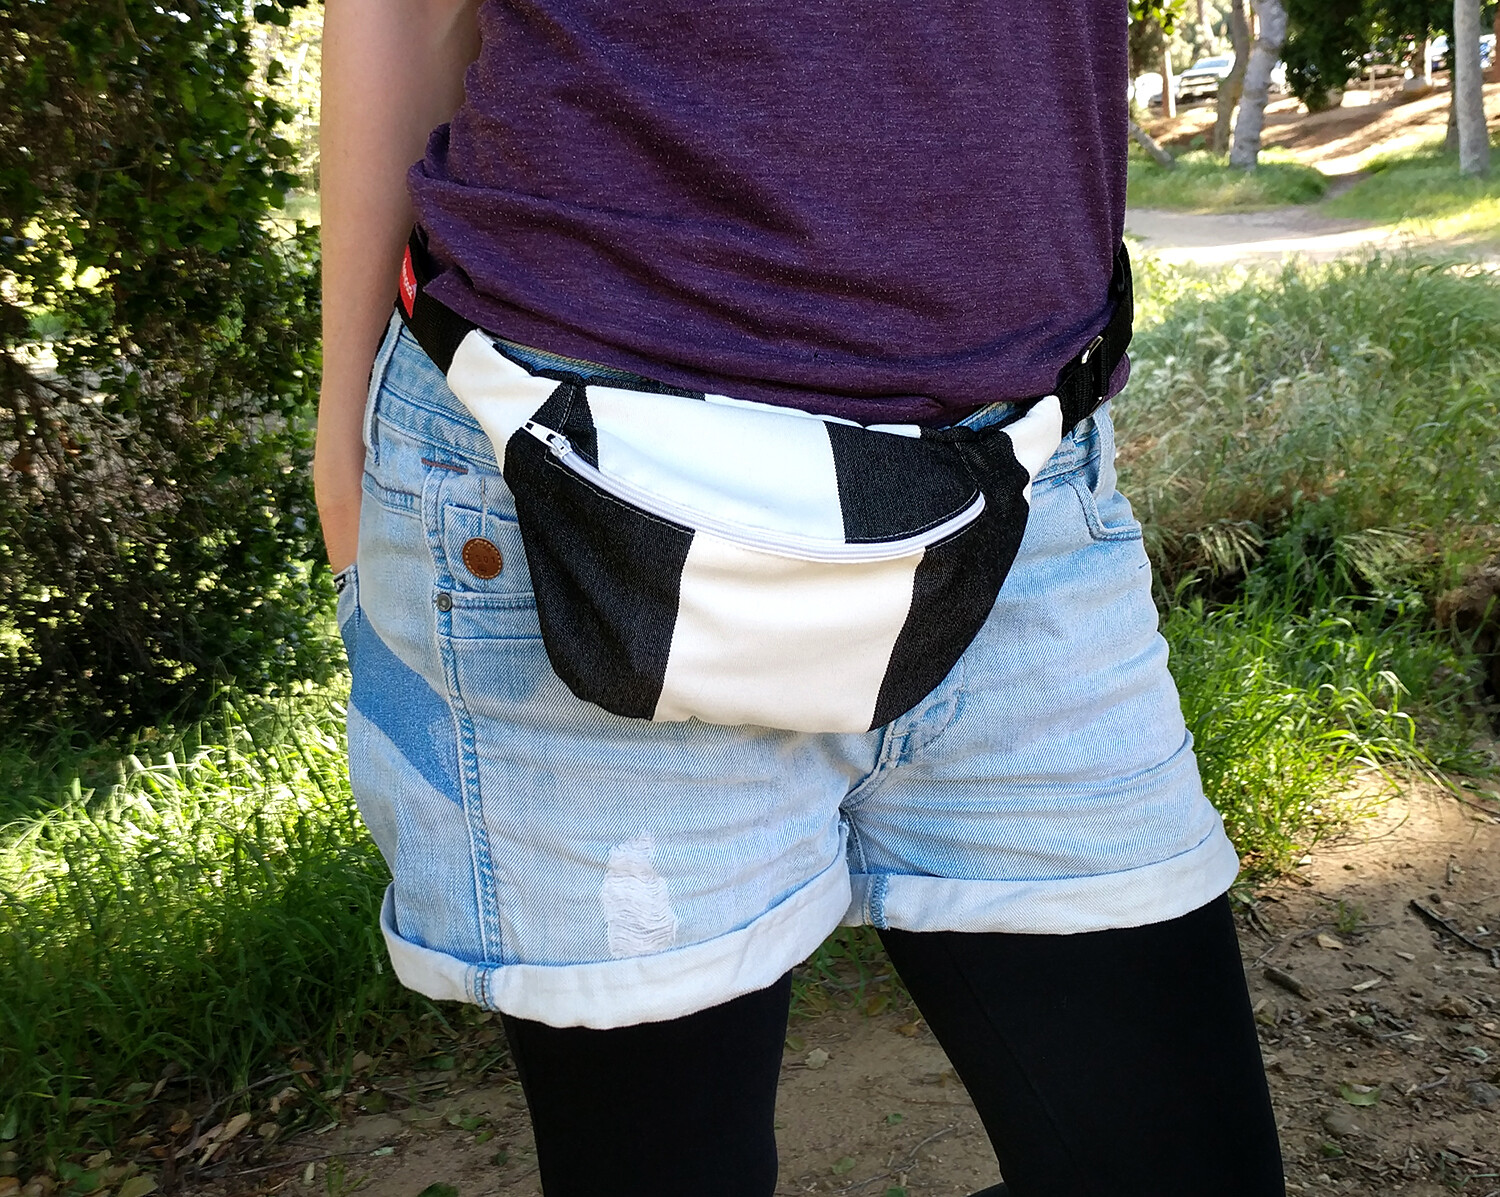 Black and White Chequered Fanny Pack